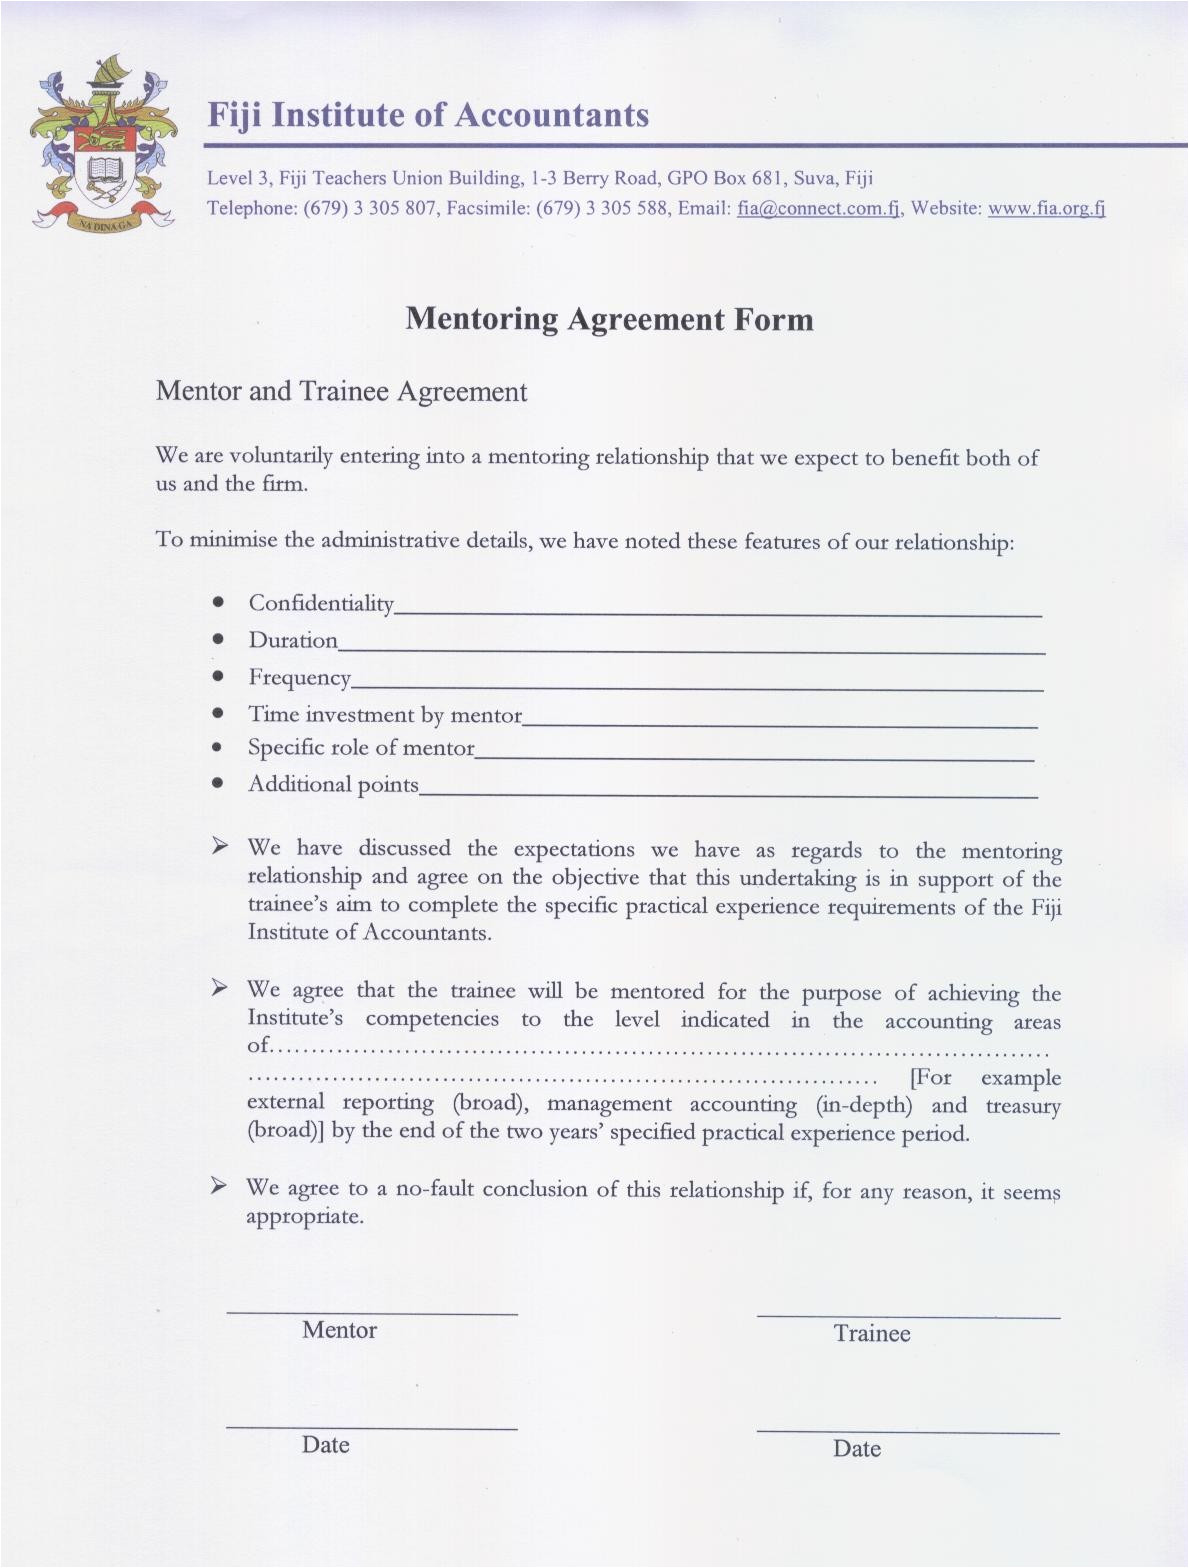 mentoring agreement form jpg